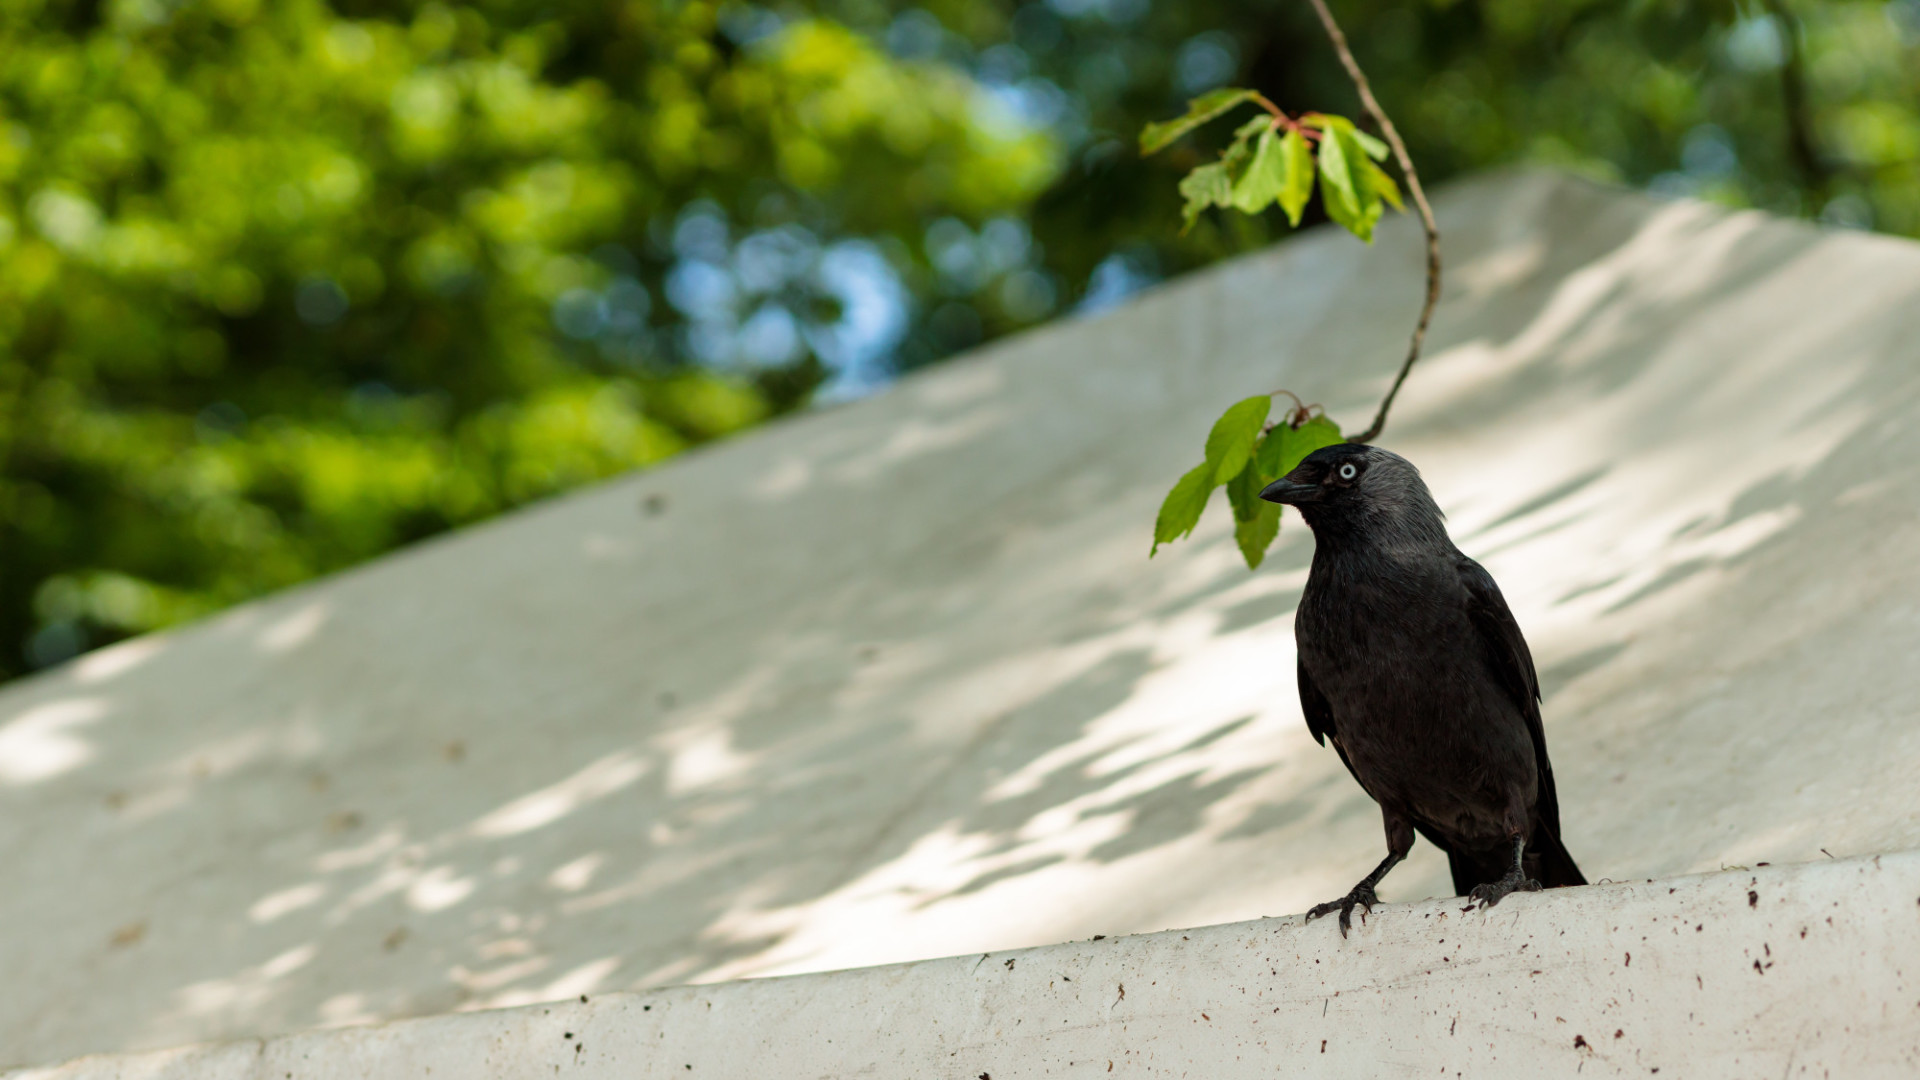 A jackdaw sits on a tent roof